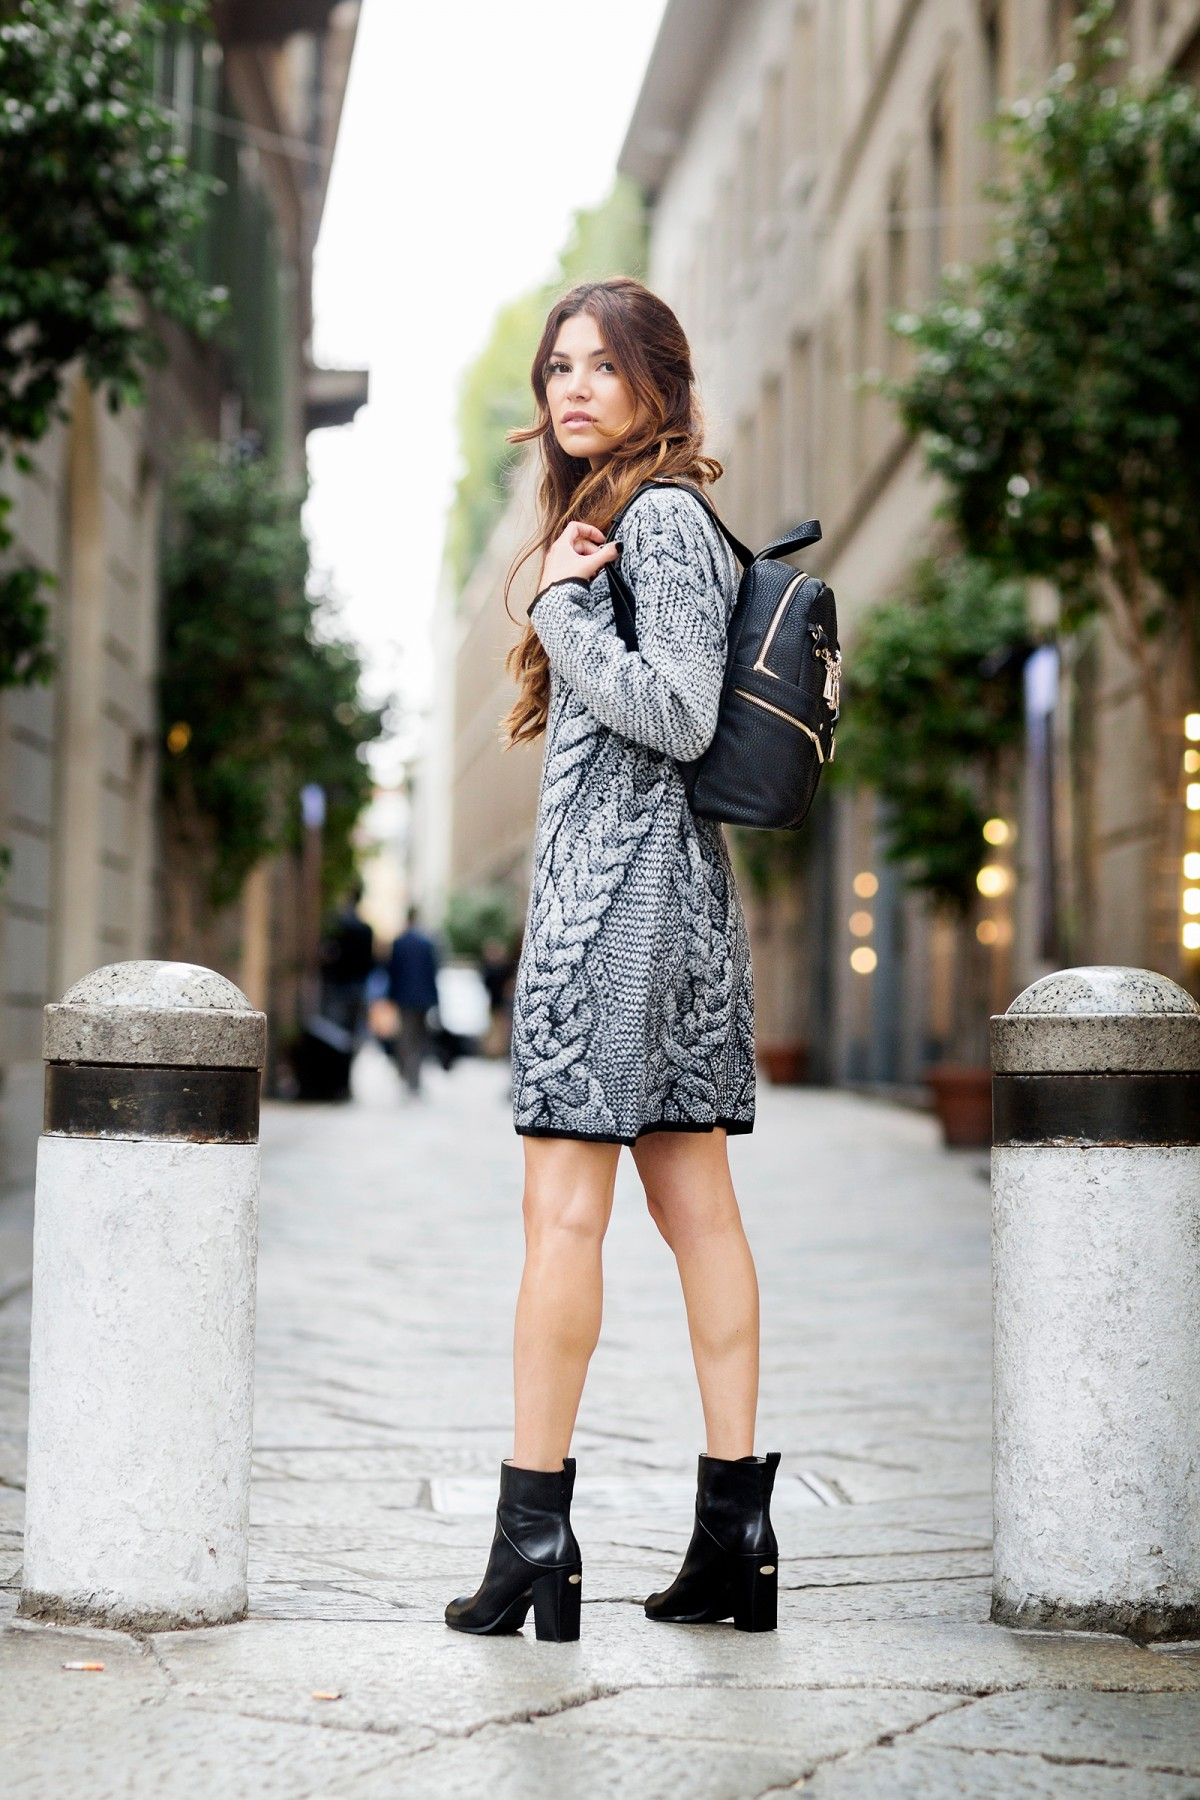 We love this long-sleeve knit dress. The black trim and an unusual weave of the fabric make the dress distinctive; it looks ultra cool worn with ankle boots and a leather backpack. Via Negin Mirsalehi. Dress/Shoes/Bag: Liu Jo.